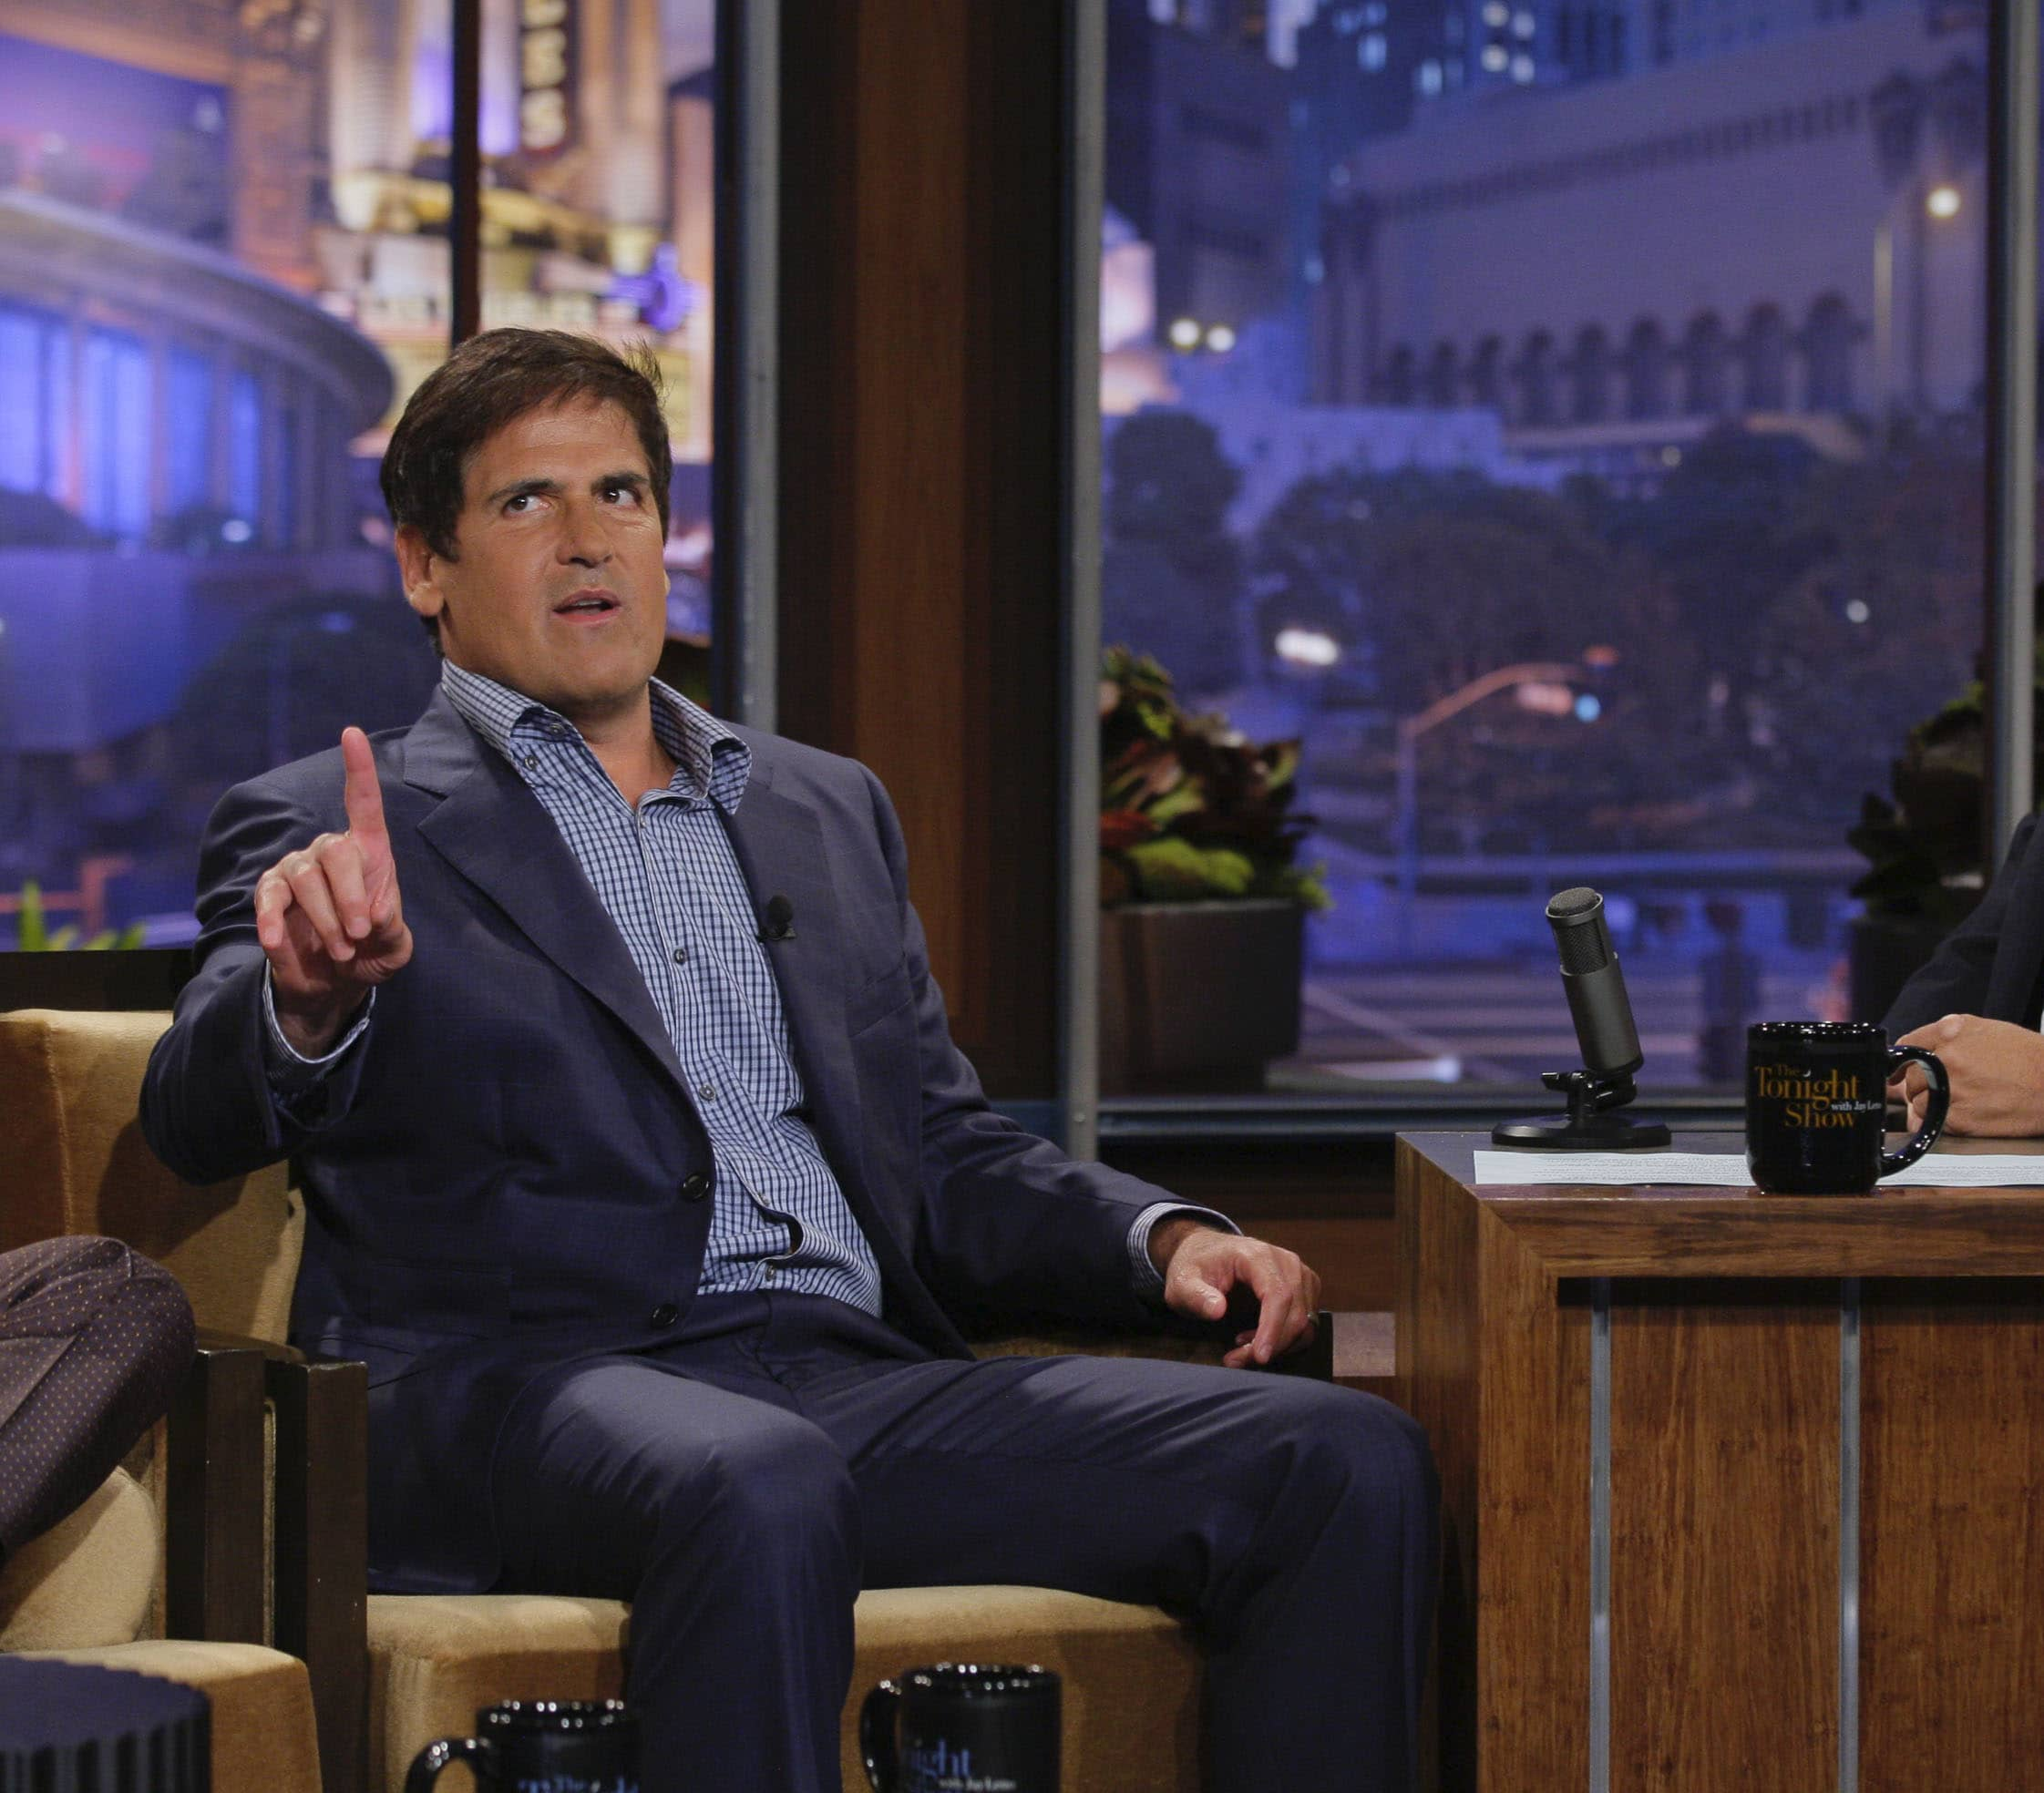 Mark Cuban: This is 'the book I wish I had as a young entrepreneur' — and 6 more recommendations